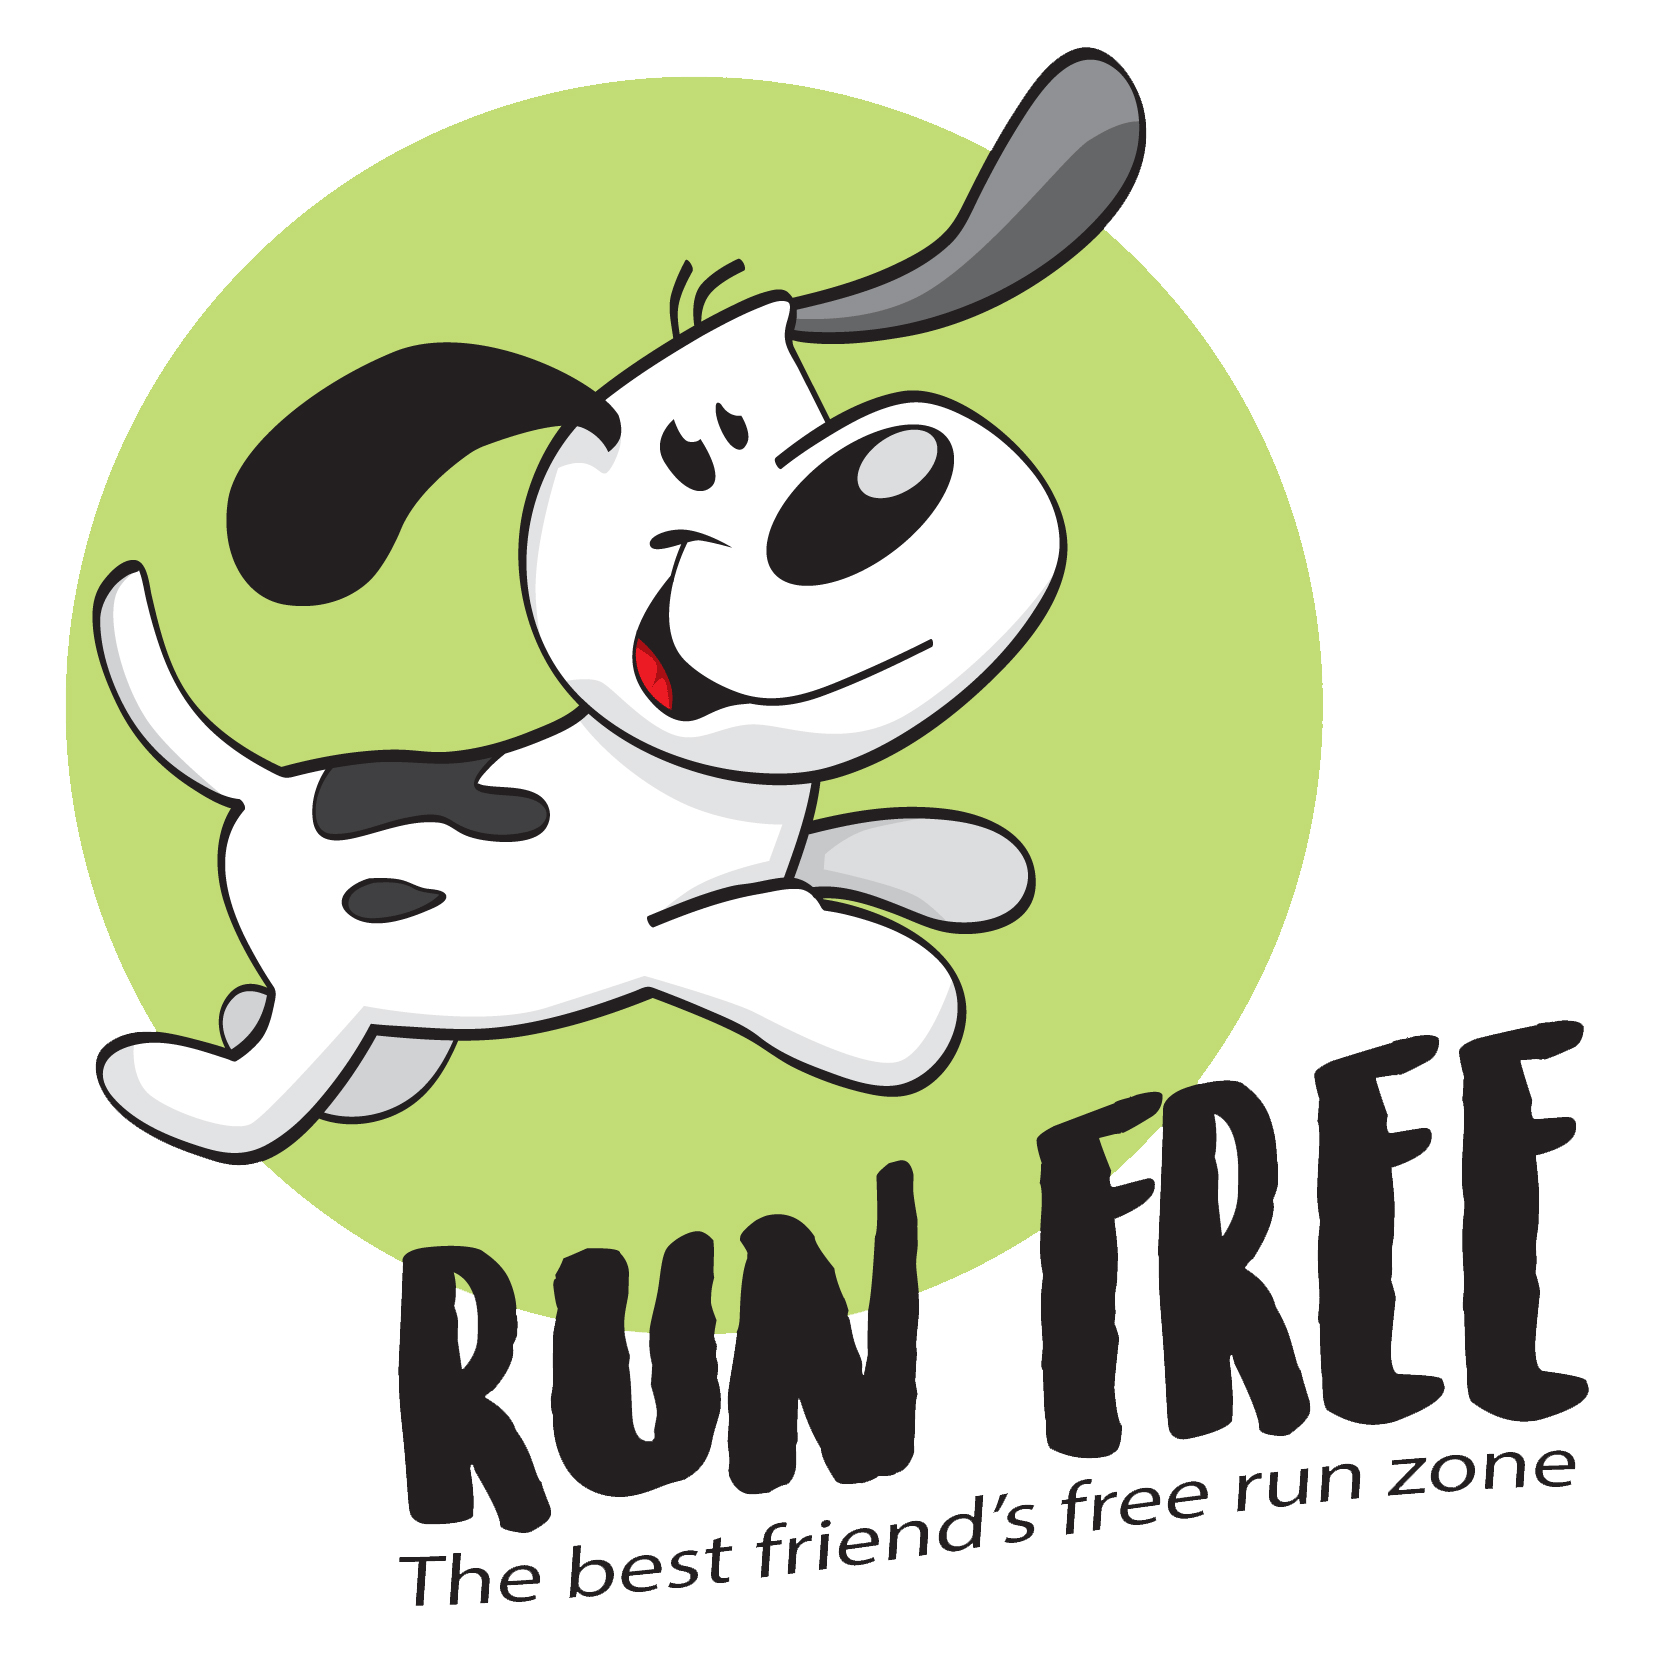 Dog sniffing ground clipart free clipart Locations - Run Free Dog Fields LTD clipart